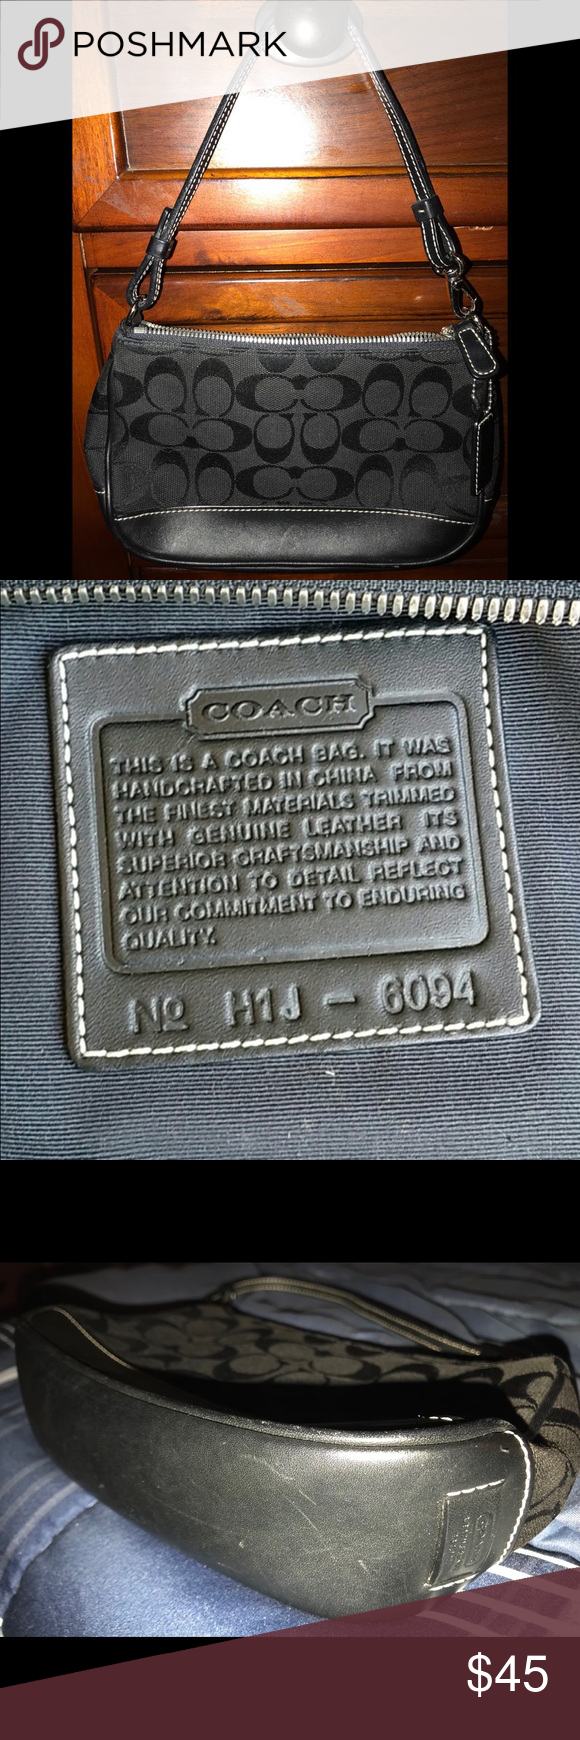 Coach Purse Small Bag Creed And Registration Number Inside No H1j